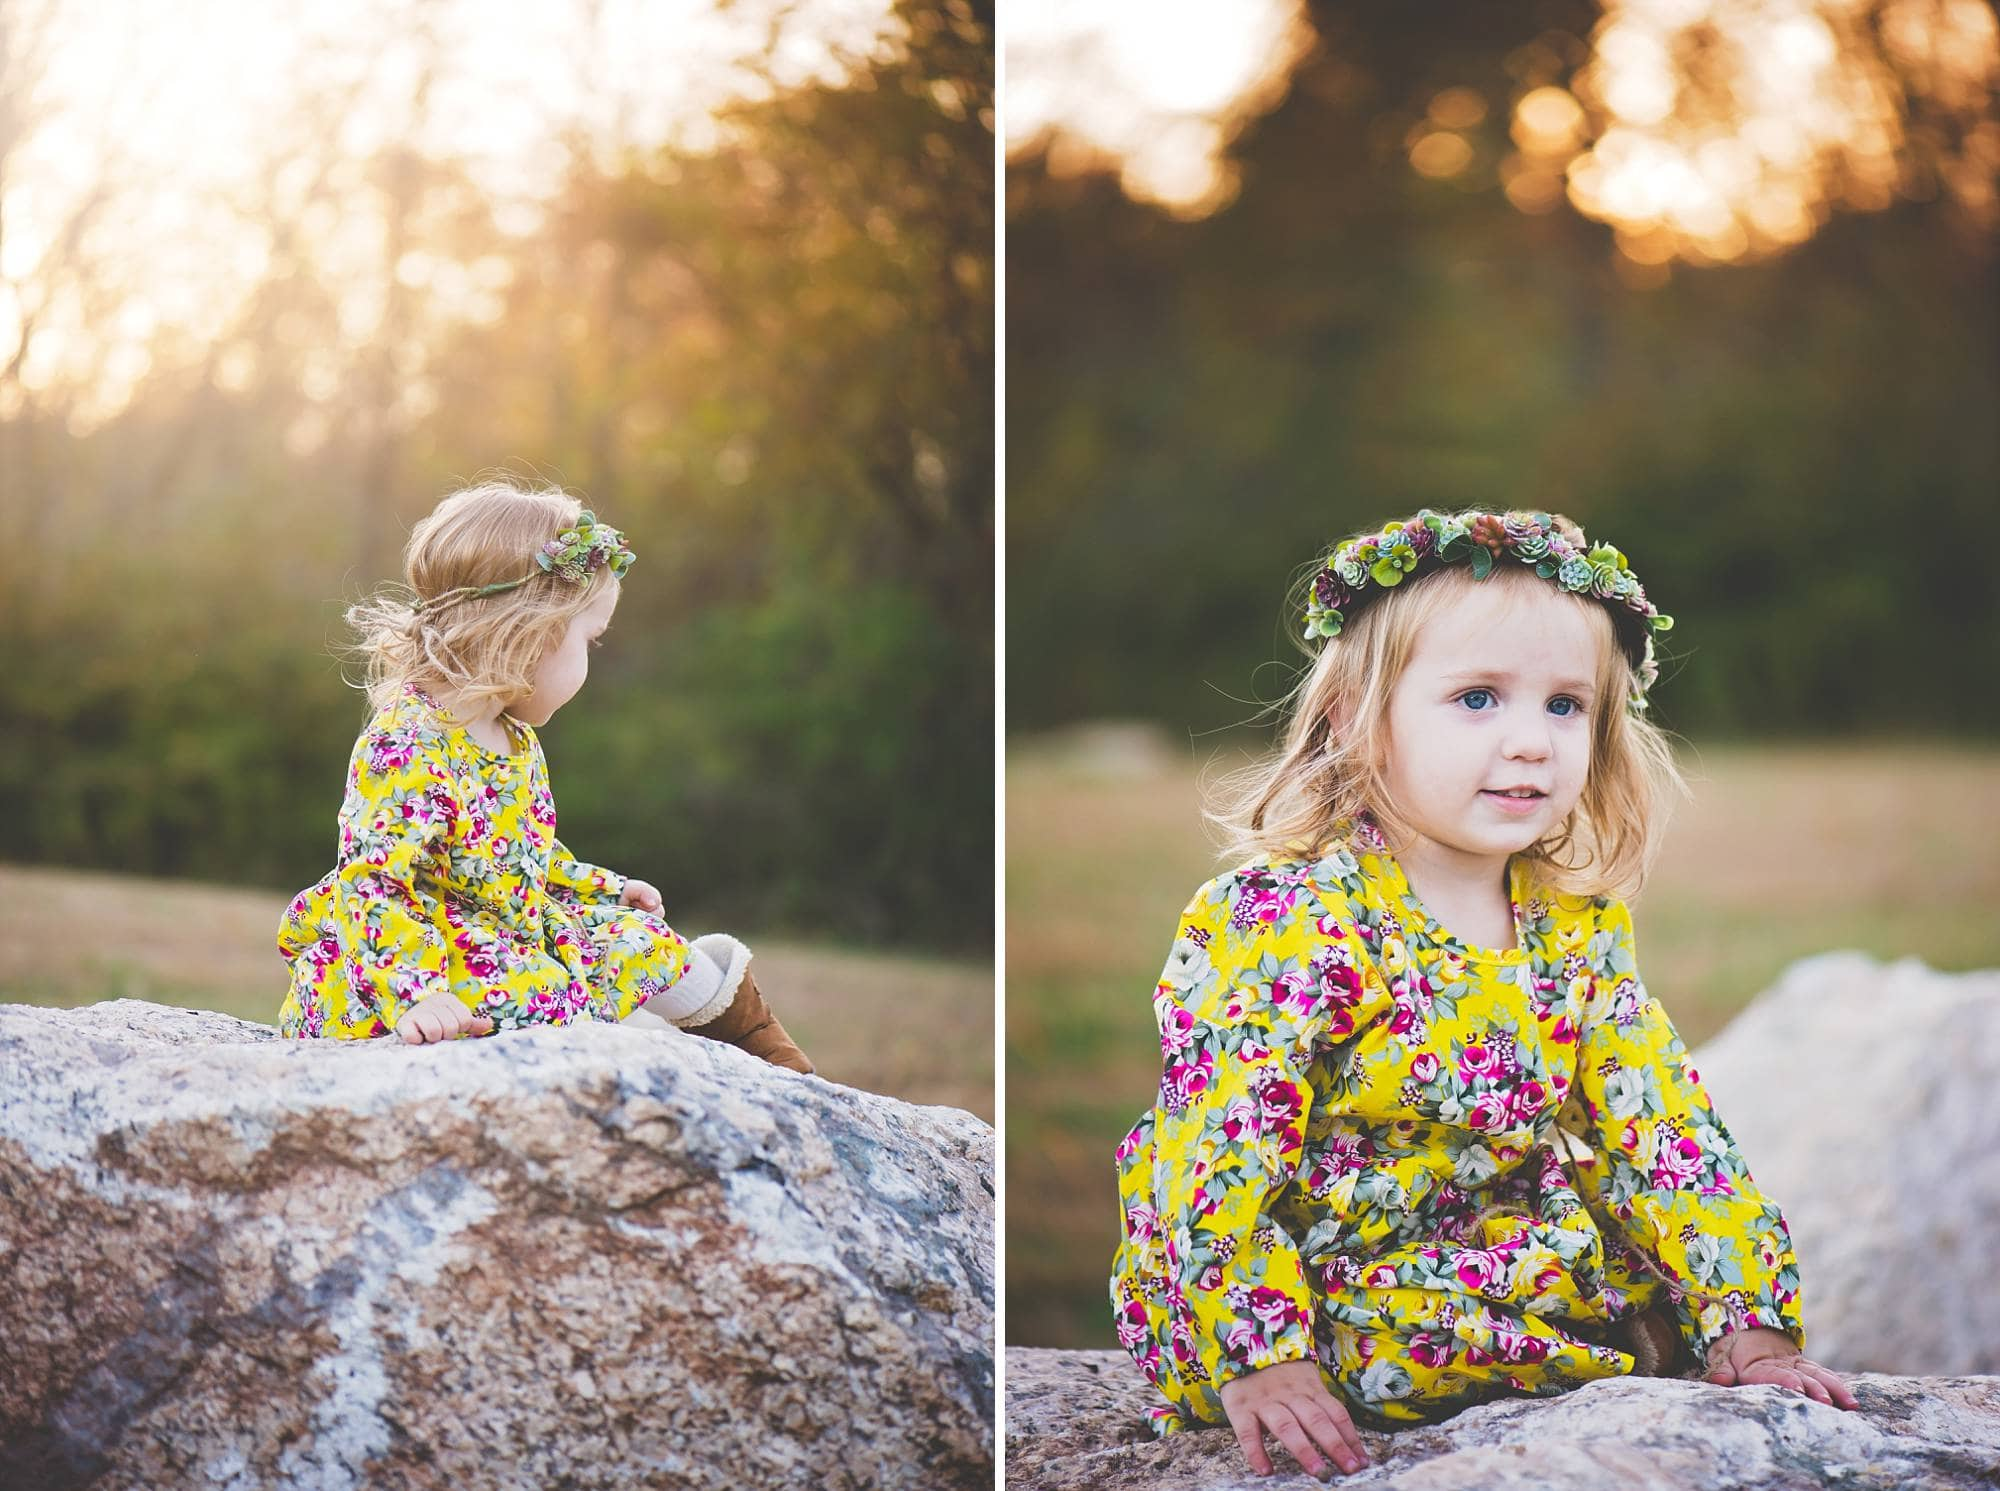 Toddler girl sitting on a rock in a field at sunset